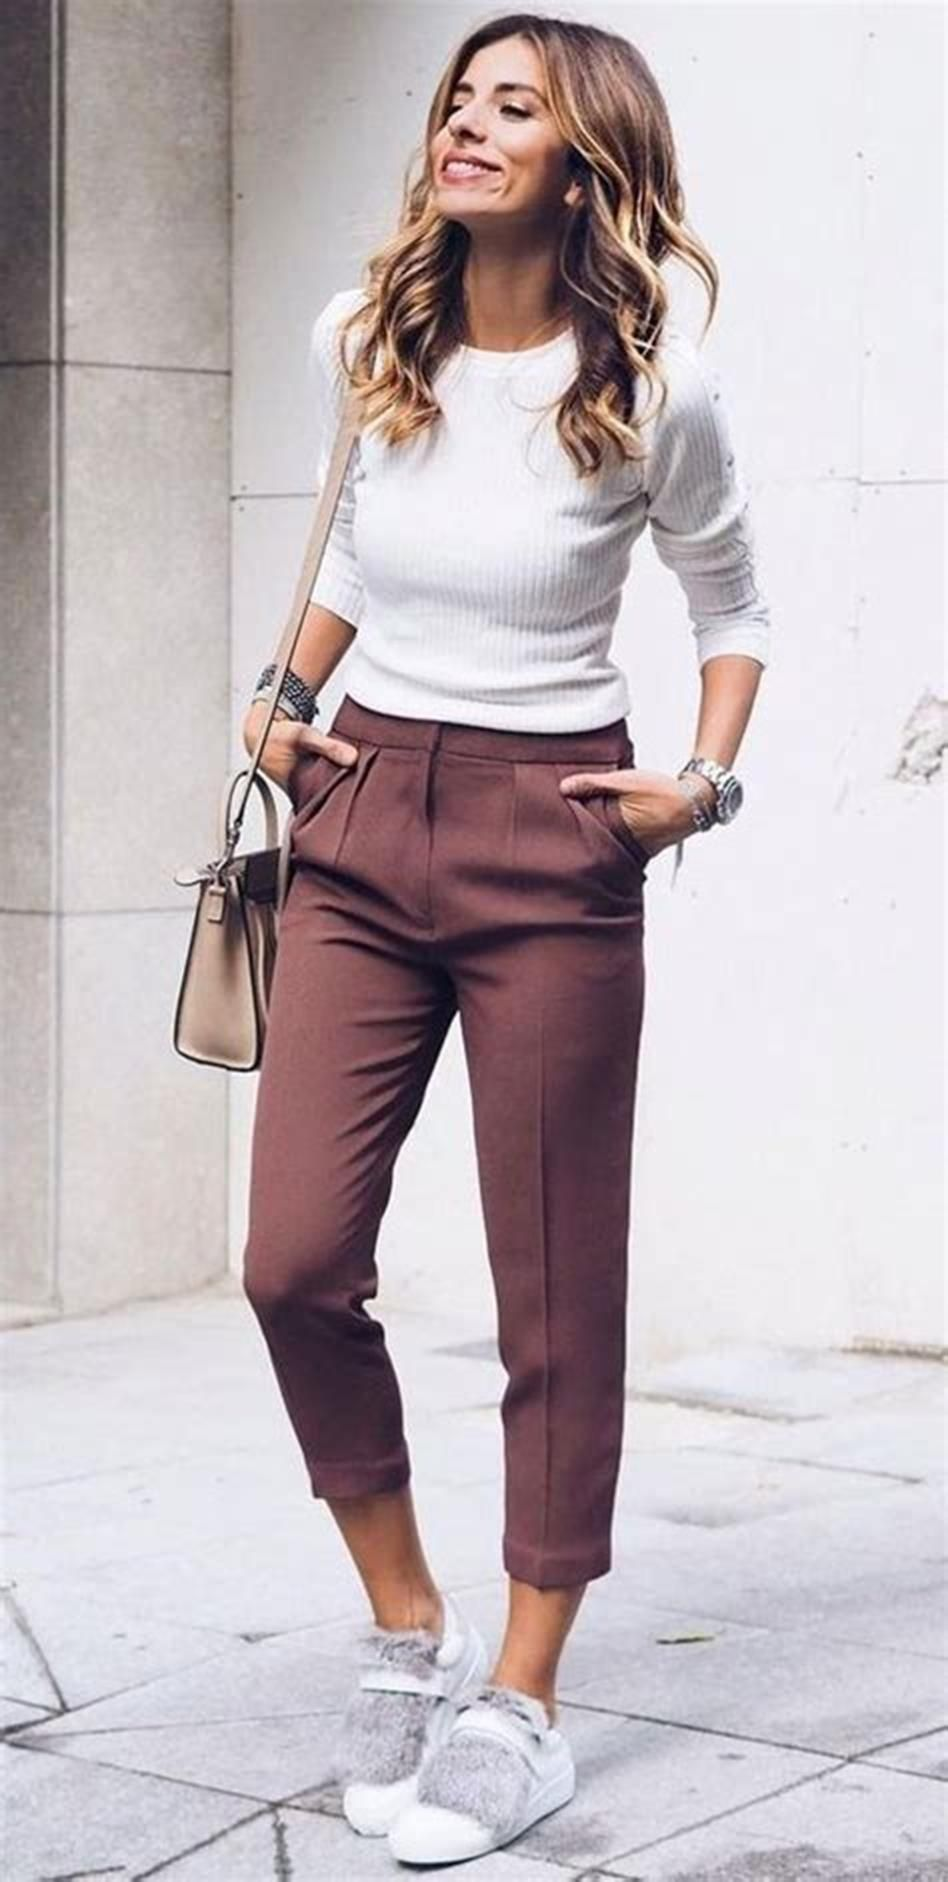 30 Stylish and Cute Casual Spring Outfits Ideas For Women 30